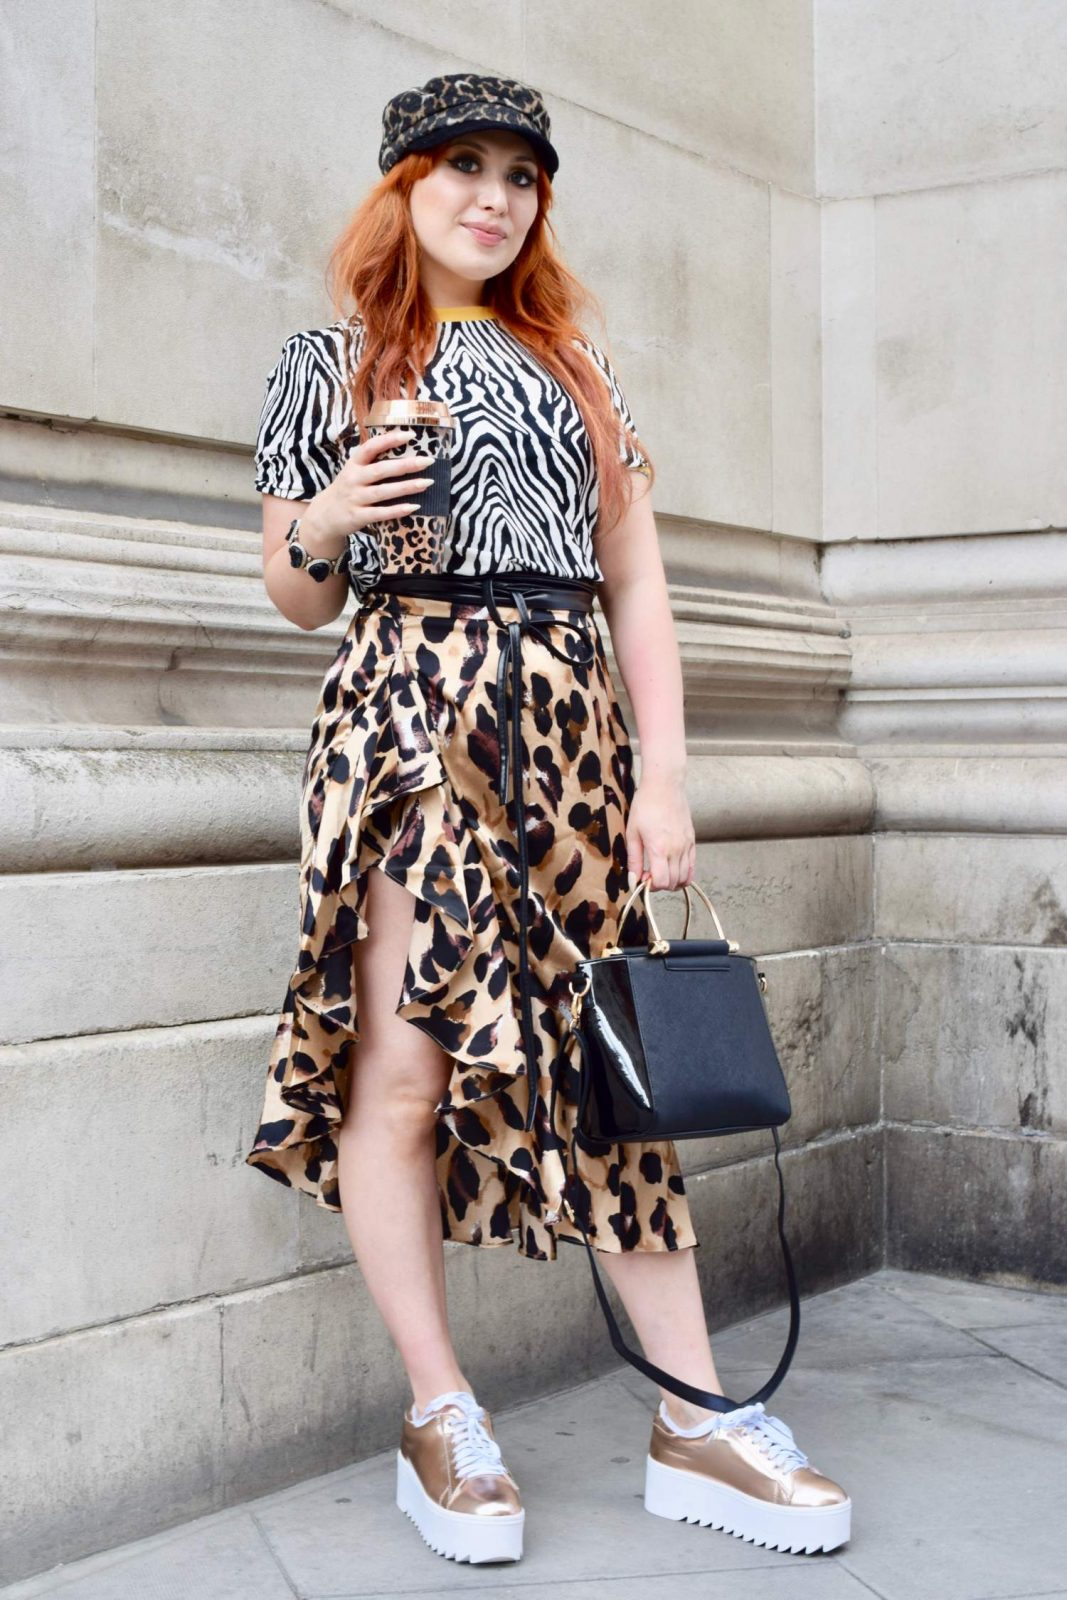 Blogger Twenty-Something City wears clashing leopard and zebra animal prints at LFW